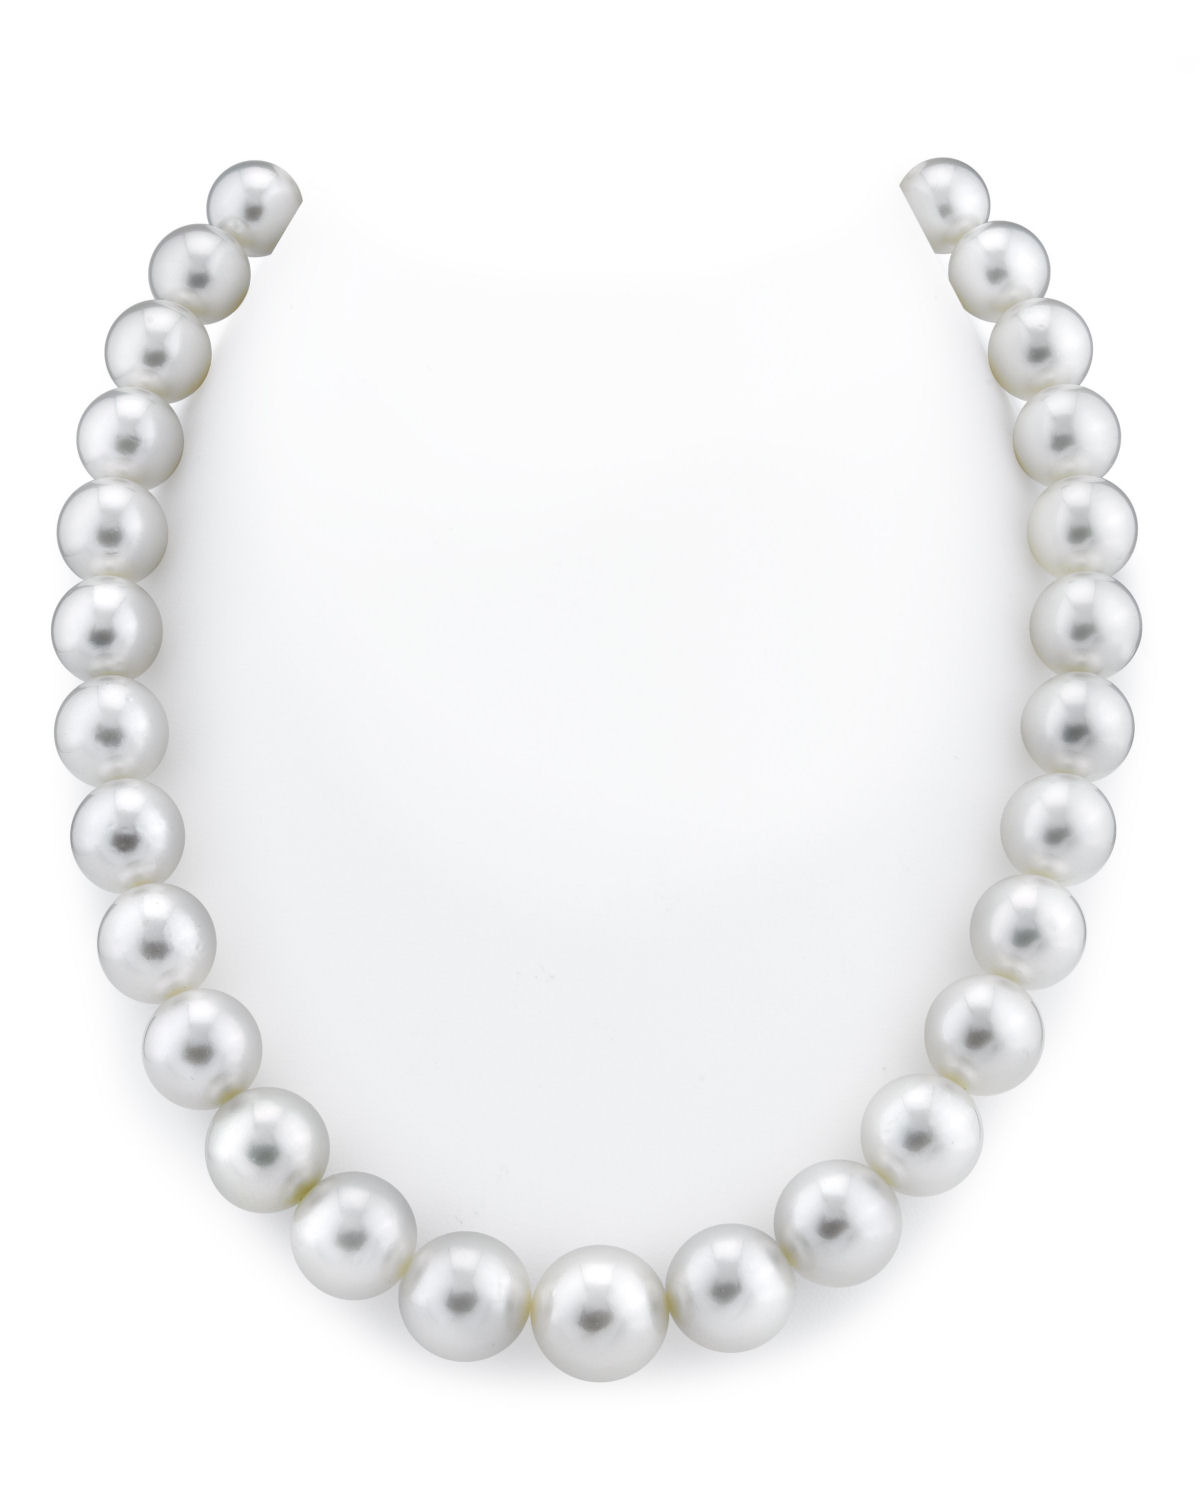 11-14mm White South Sea Pearl Necklace - AAAA Quality